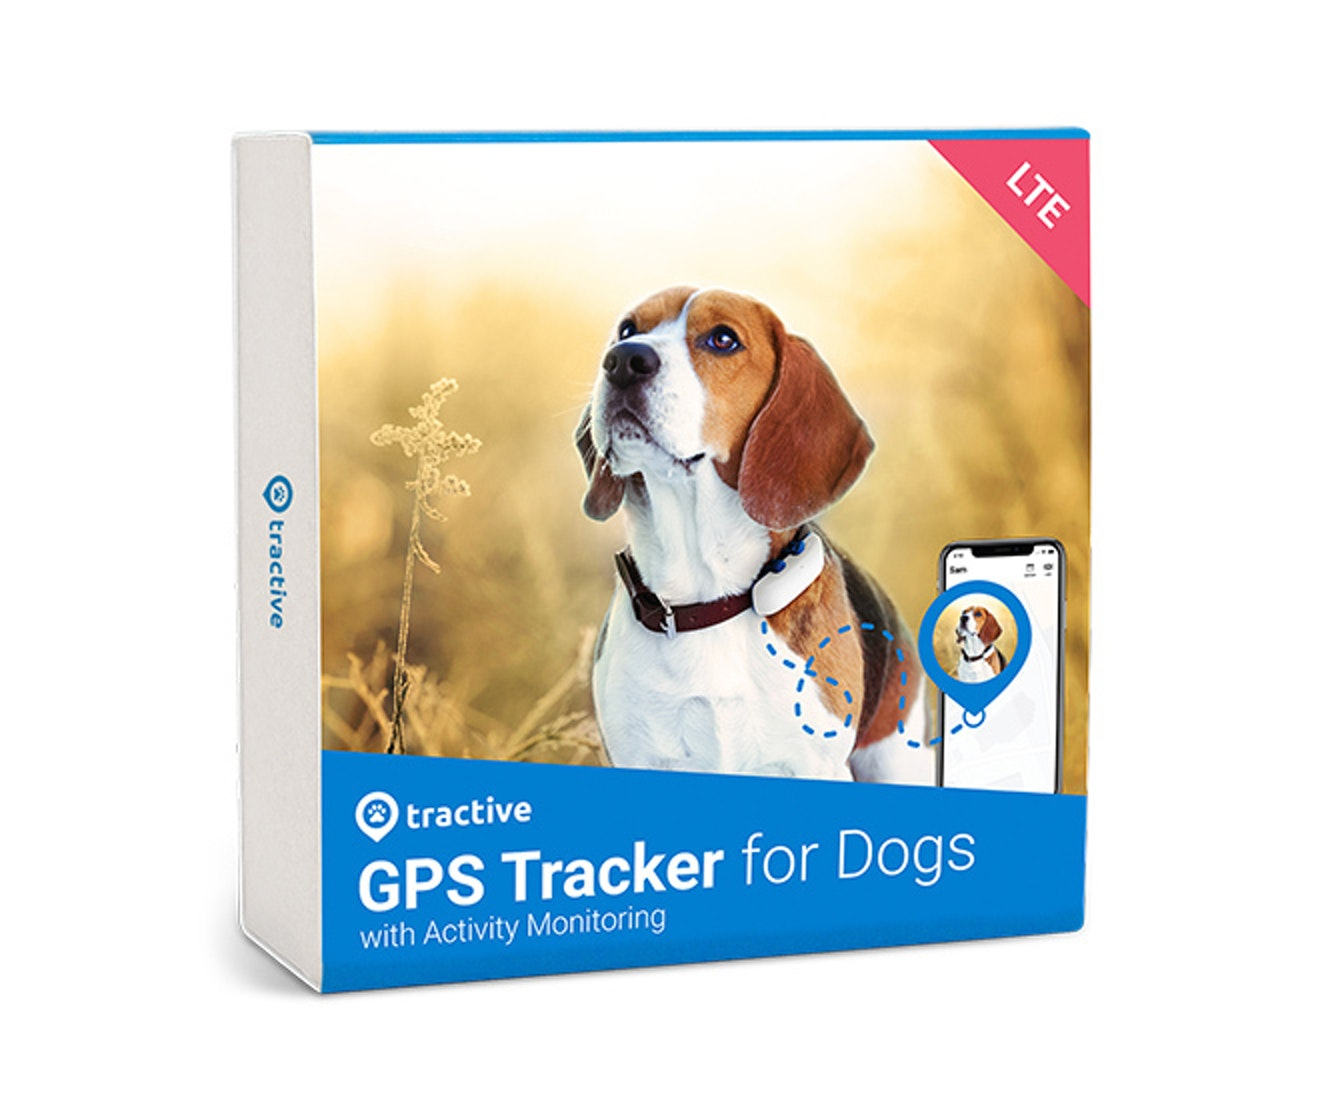 See exactly how close, and let Tractive GPS lead you to your furry friend with the new Find feature.